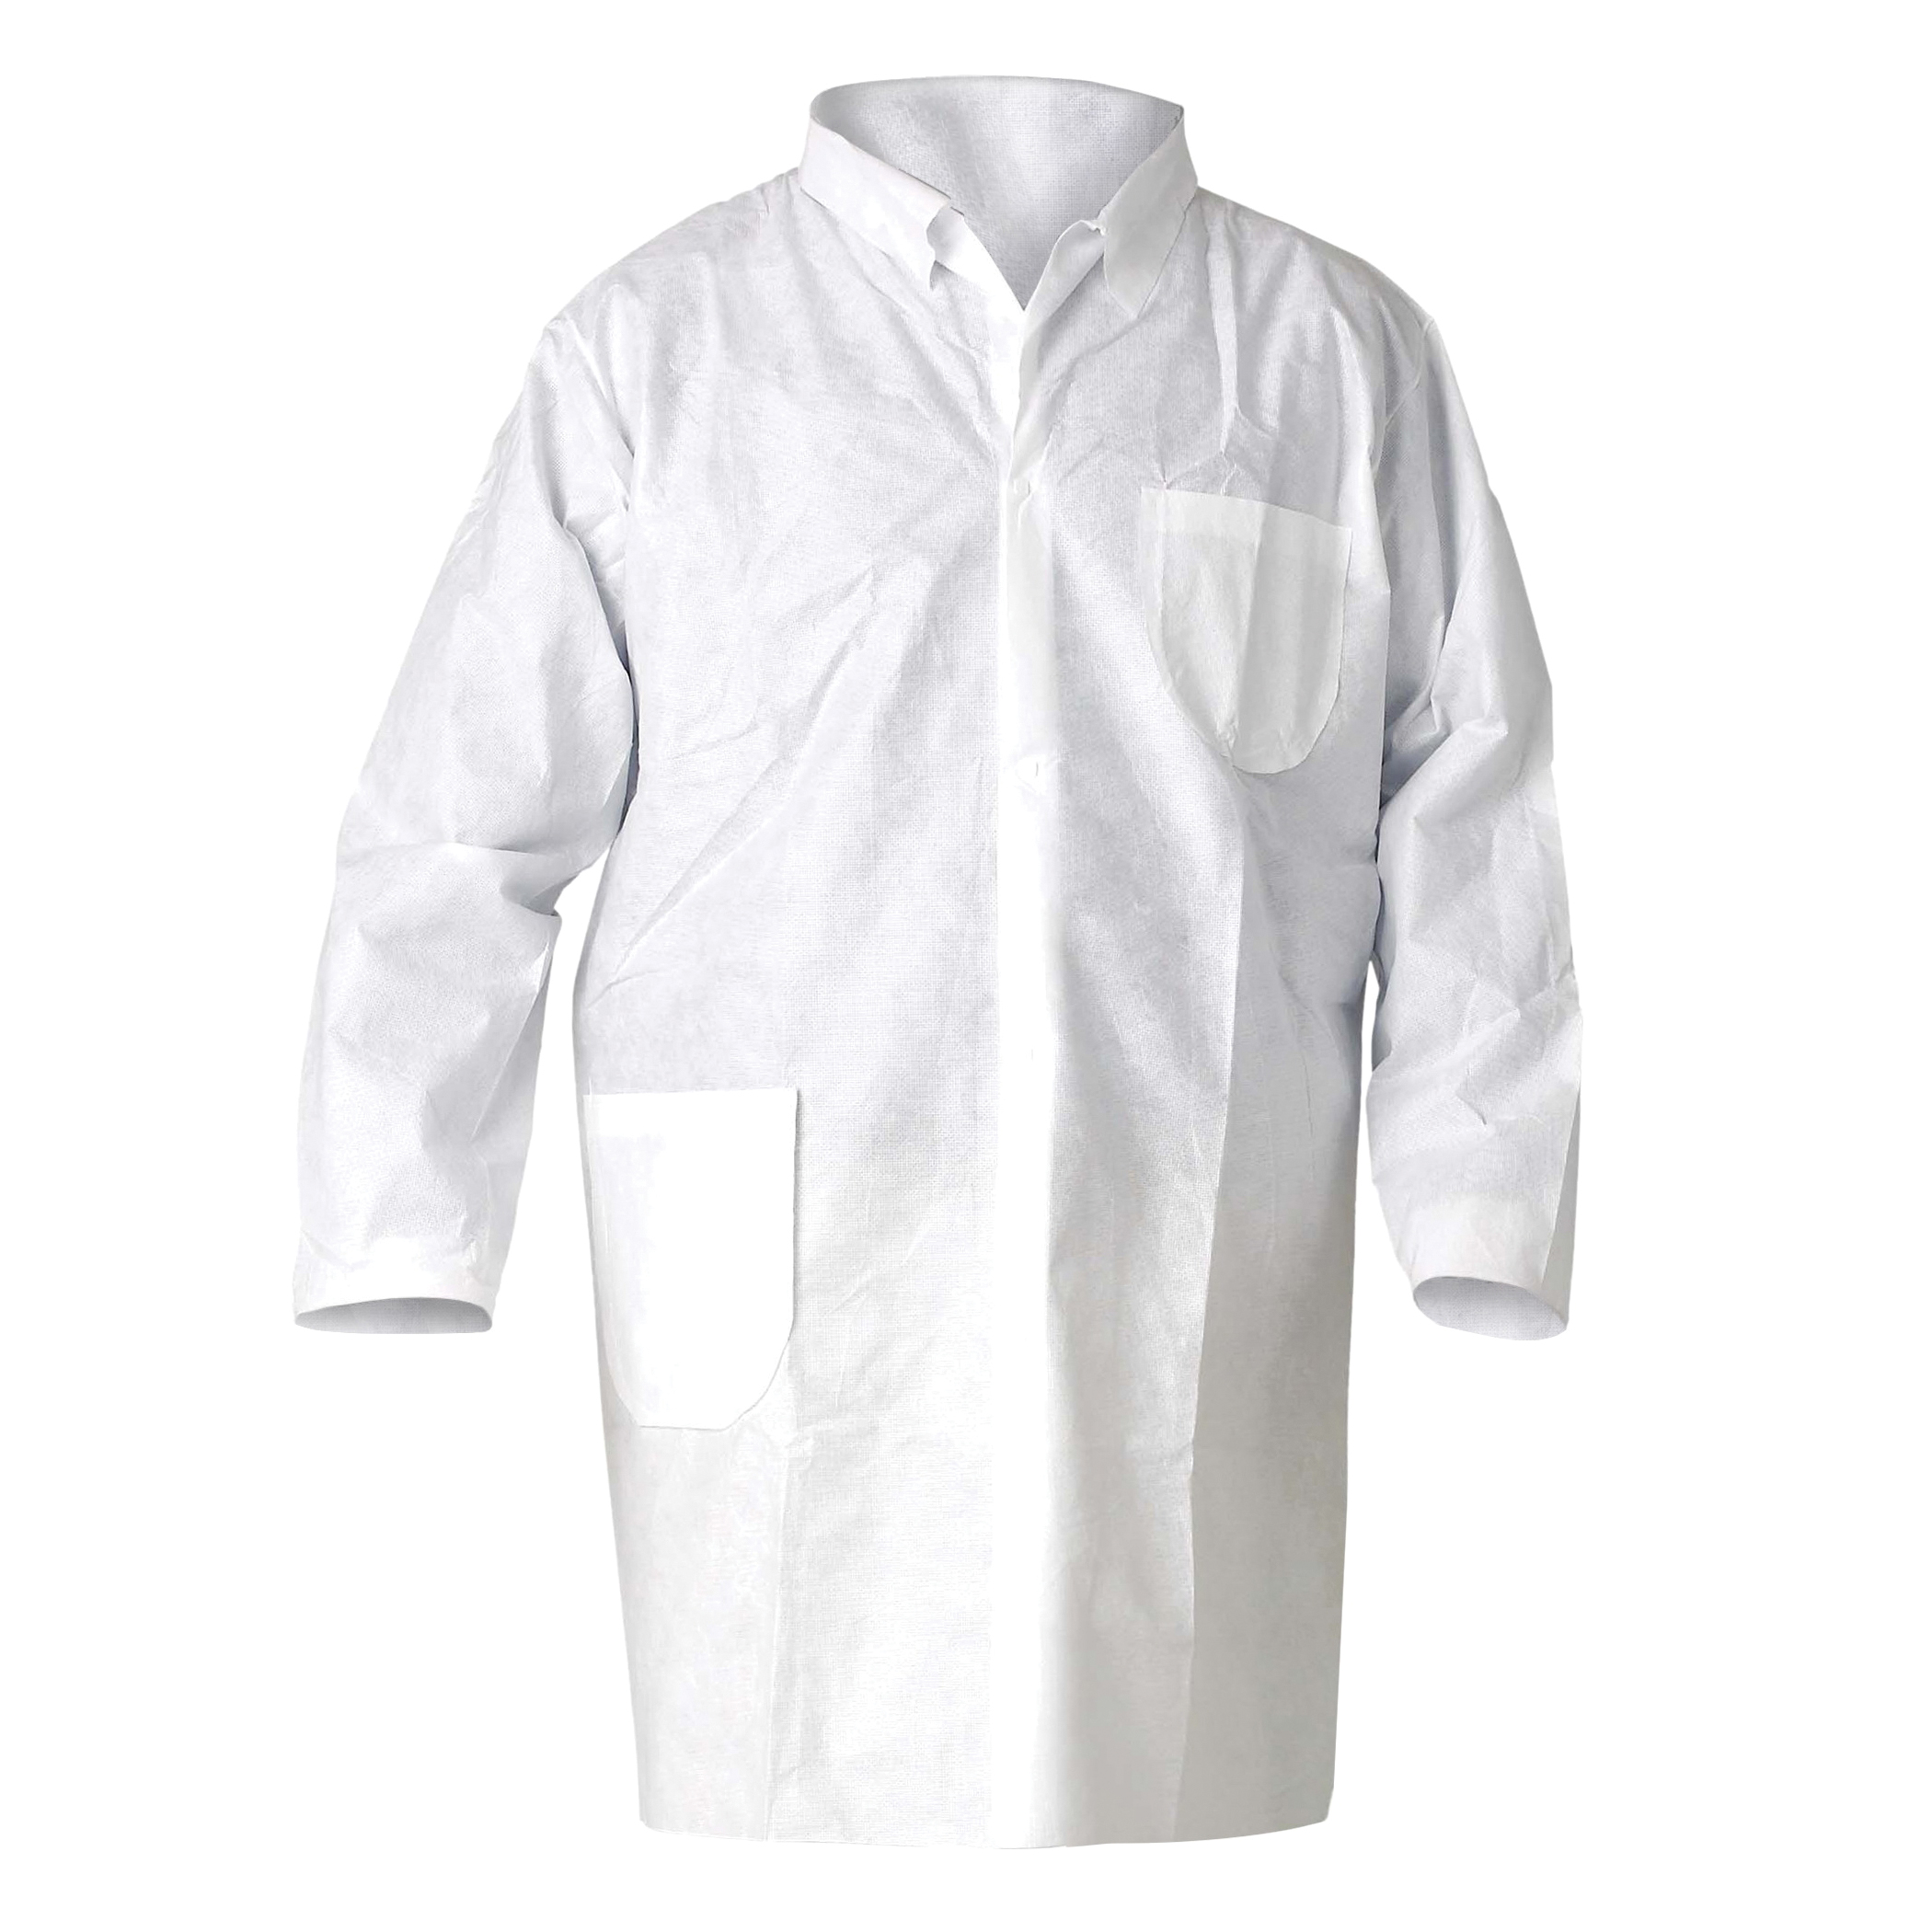 KleenGuard™ 10029 A20 Breathable Lab Coat, Unisex, L, White, MICROFORCE* Barrier SMS Fabric, Snap Front Closure, 2 Pockets, TAA Complaint, NFPA 99